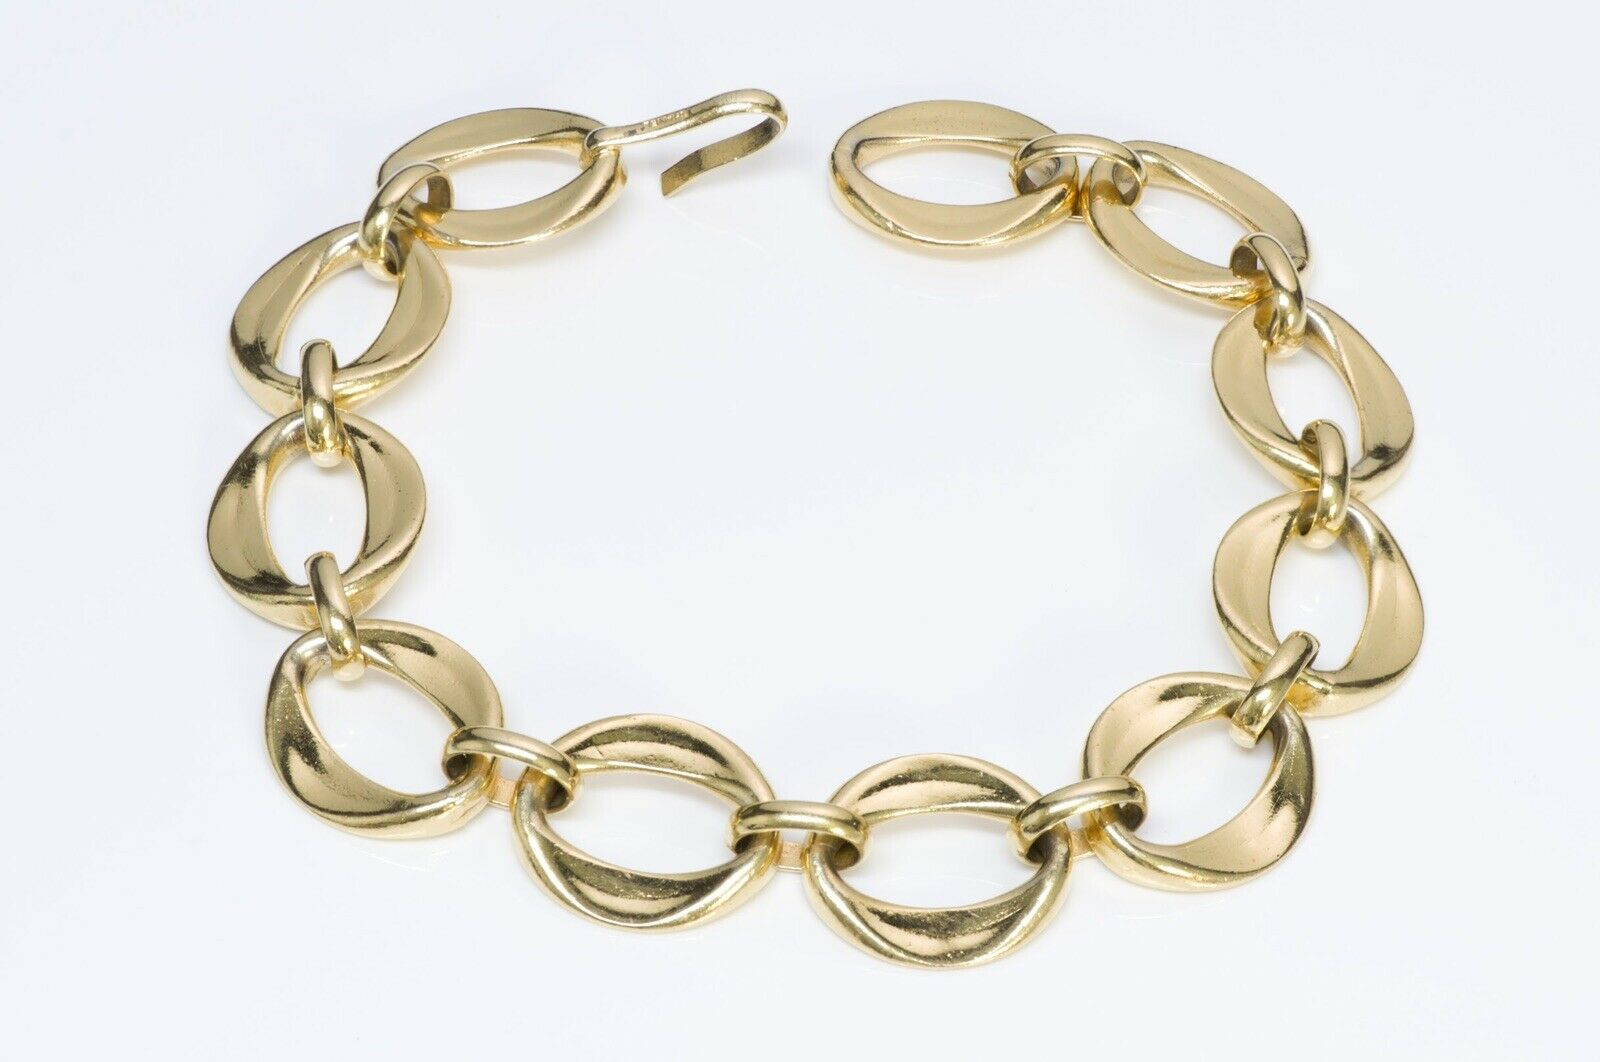 chanel-1980-s-chain-link-choker-necklace